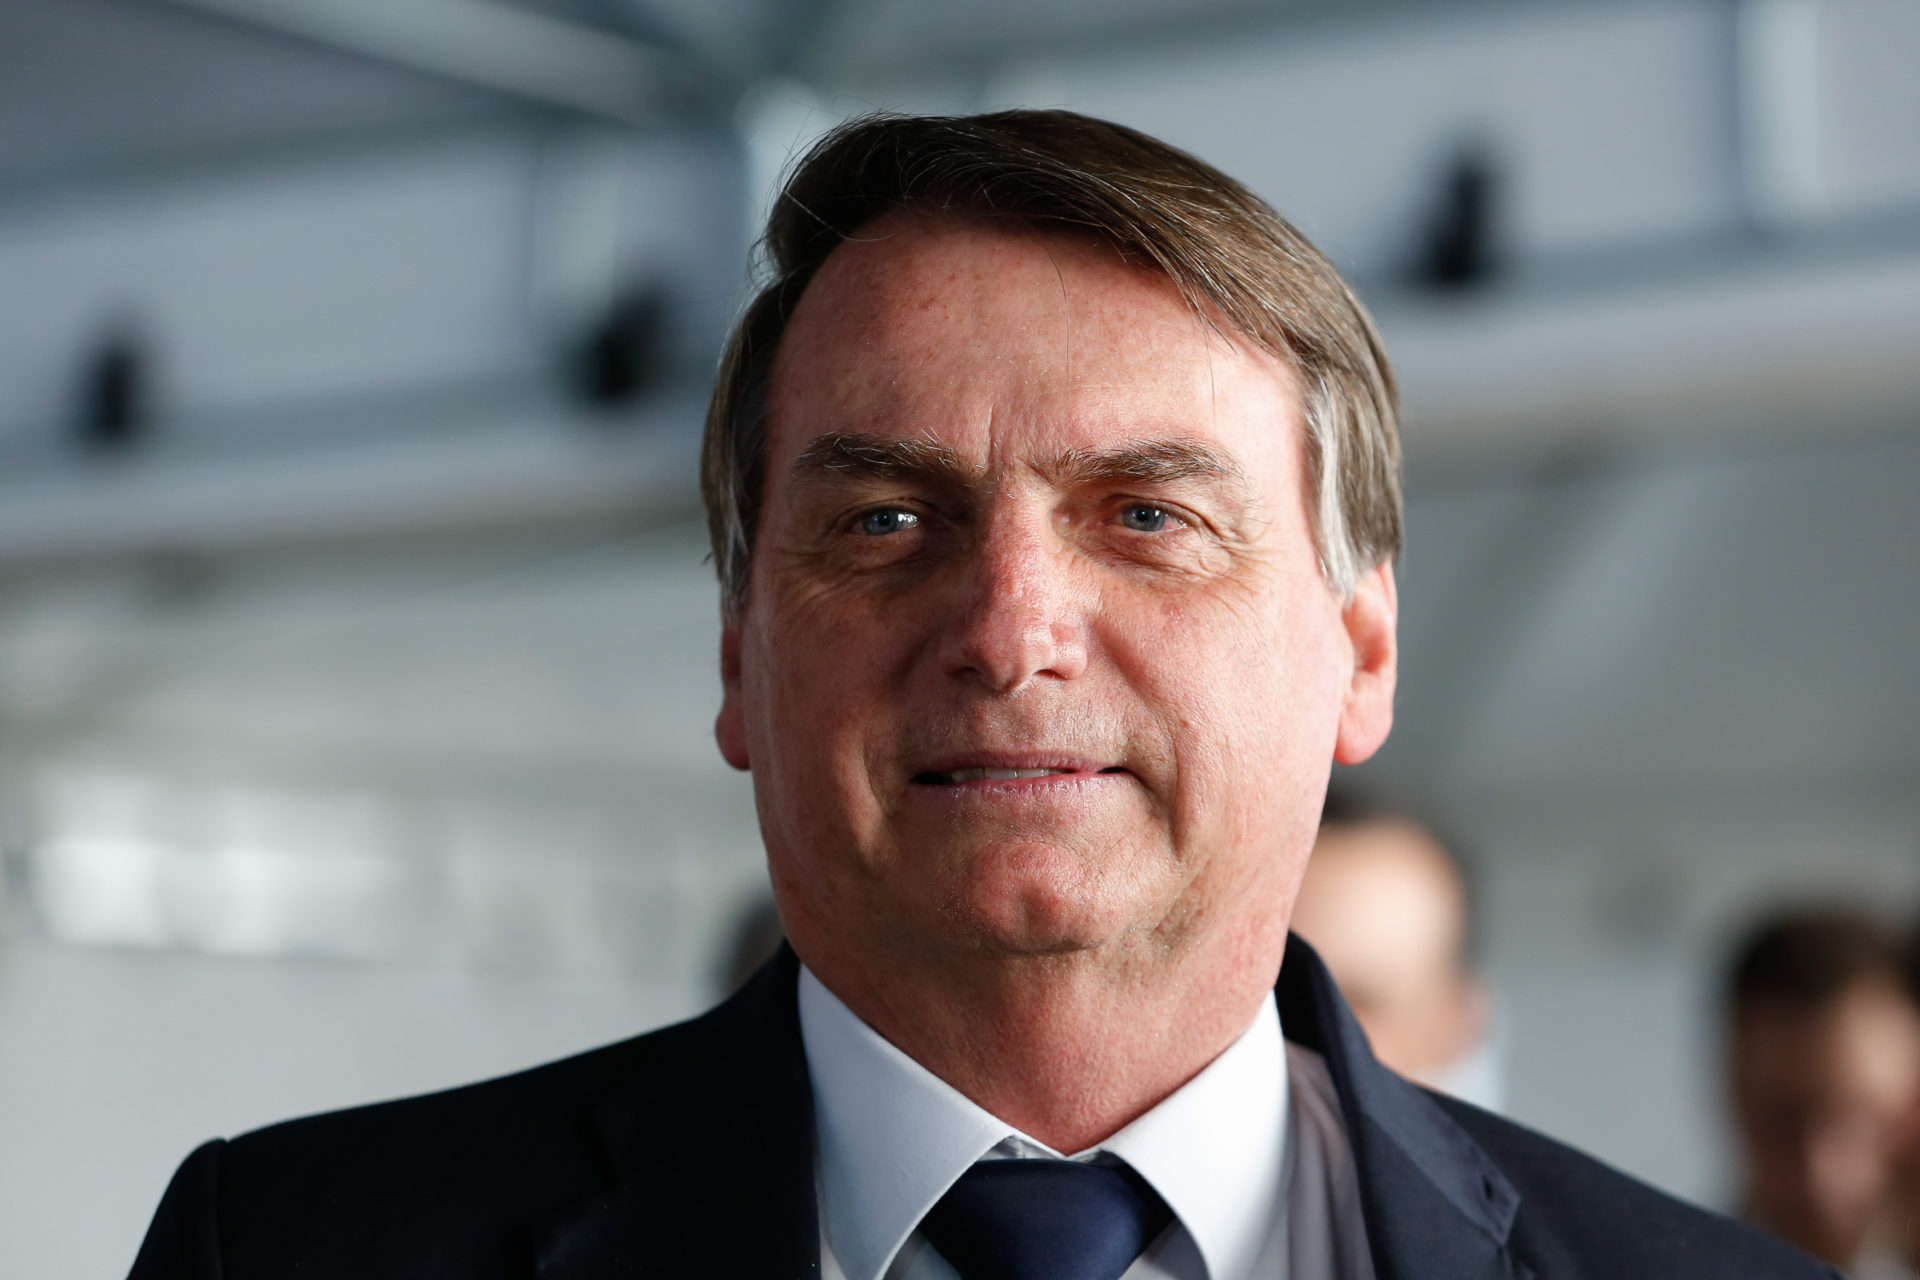 One year into Bolsonaro's presidency